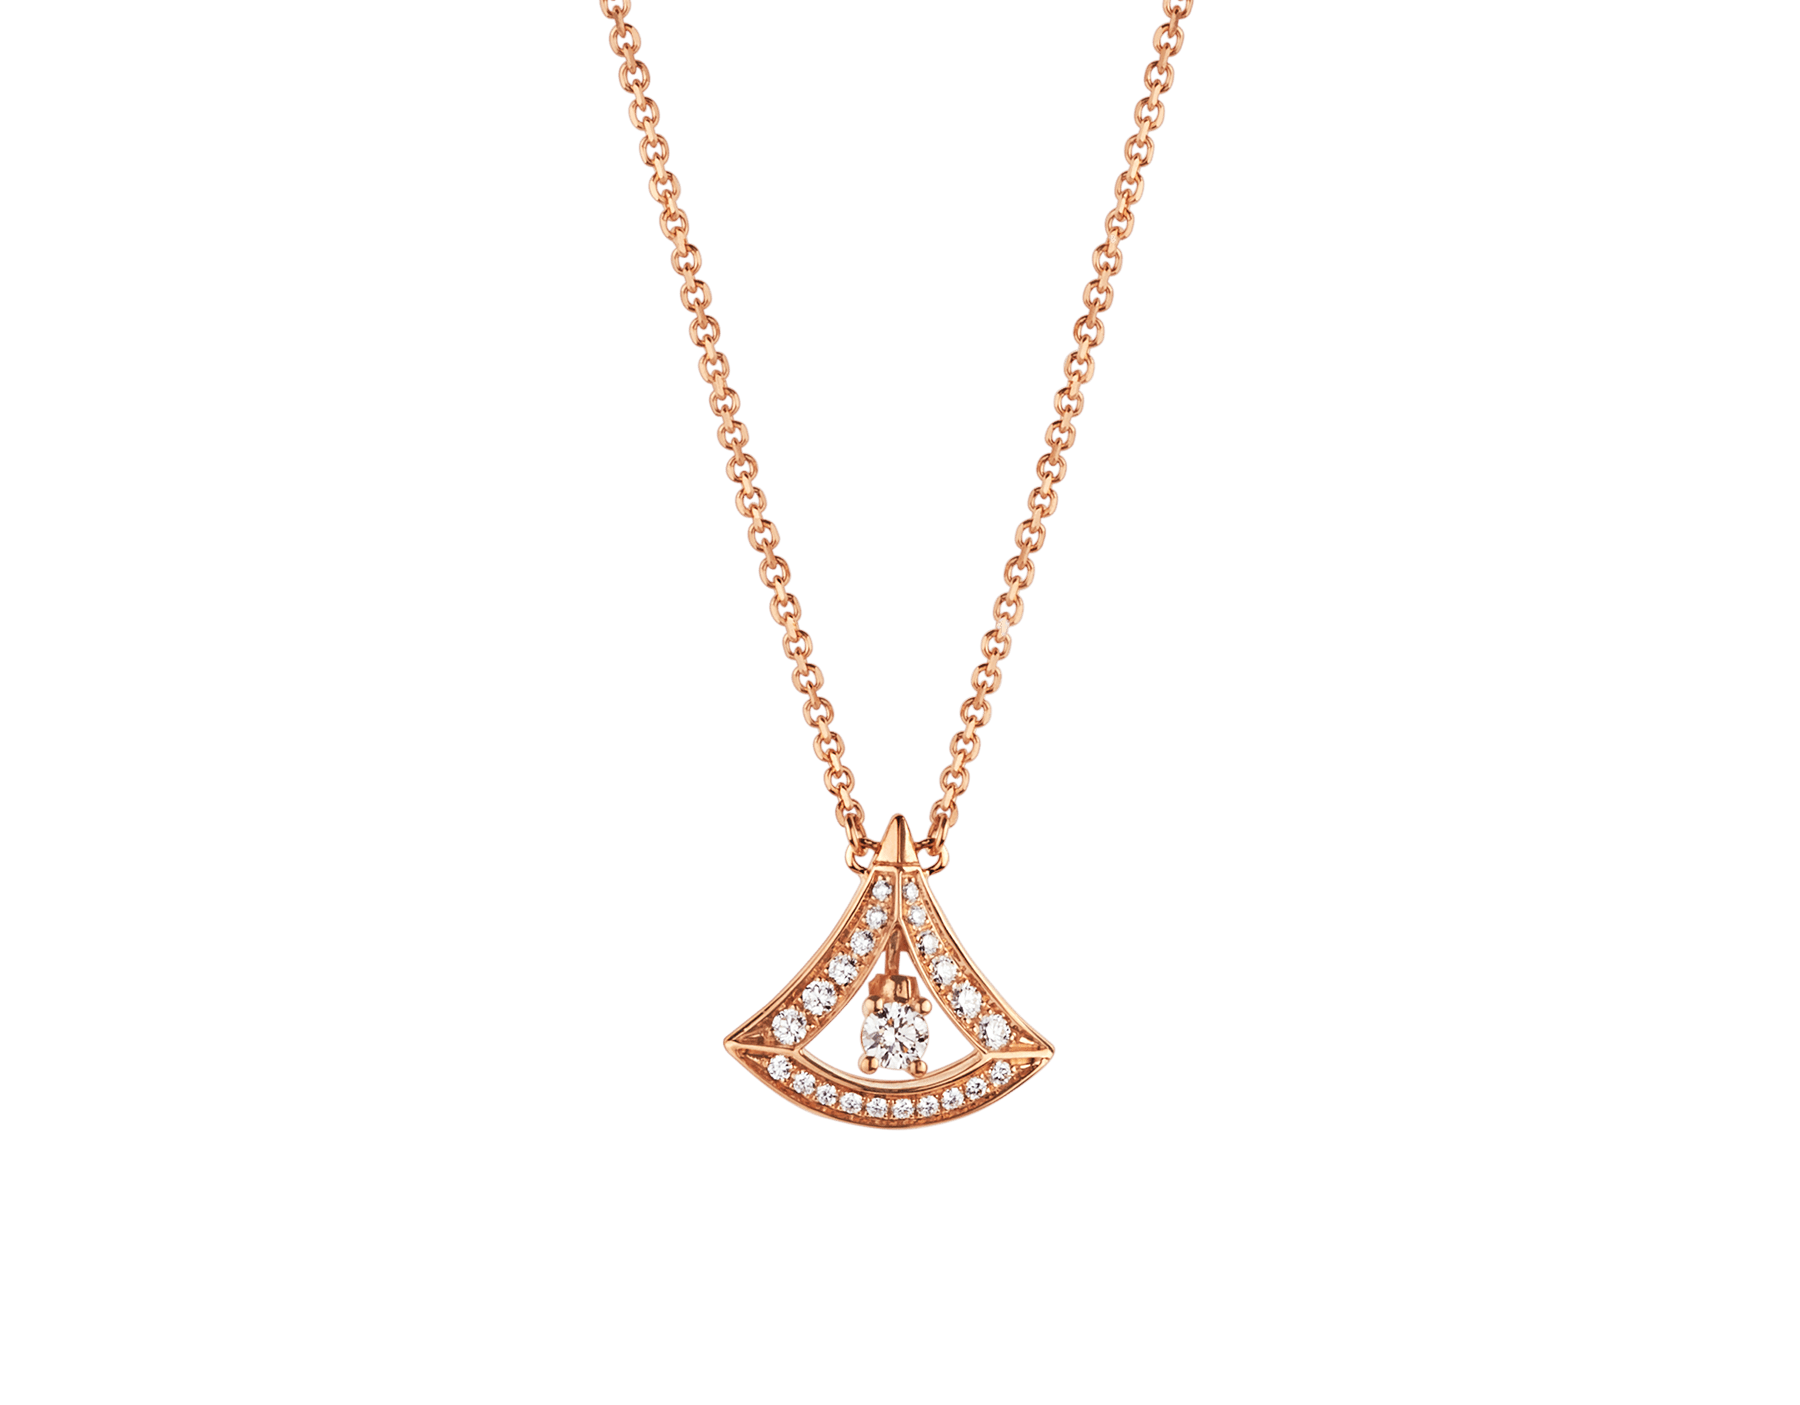 DIVAS' DREAM 18 kt rose gold openwork necklace with 18 kt rose gold pendant set with a central diamond and pavé diamonds. 354363 image 1